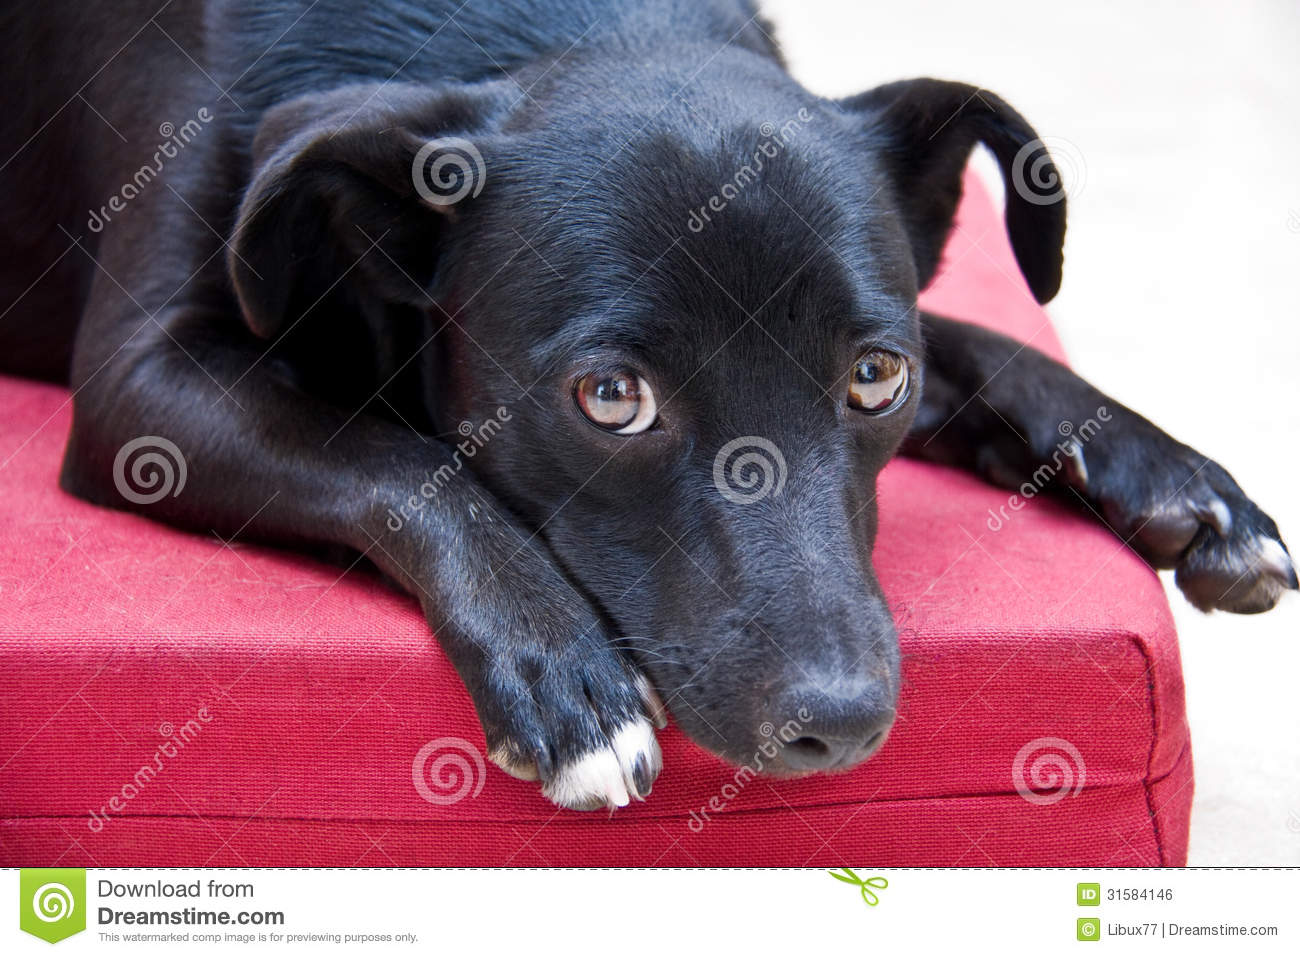 Dog Looking with Sweet Eyes